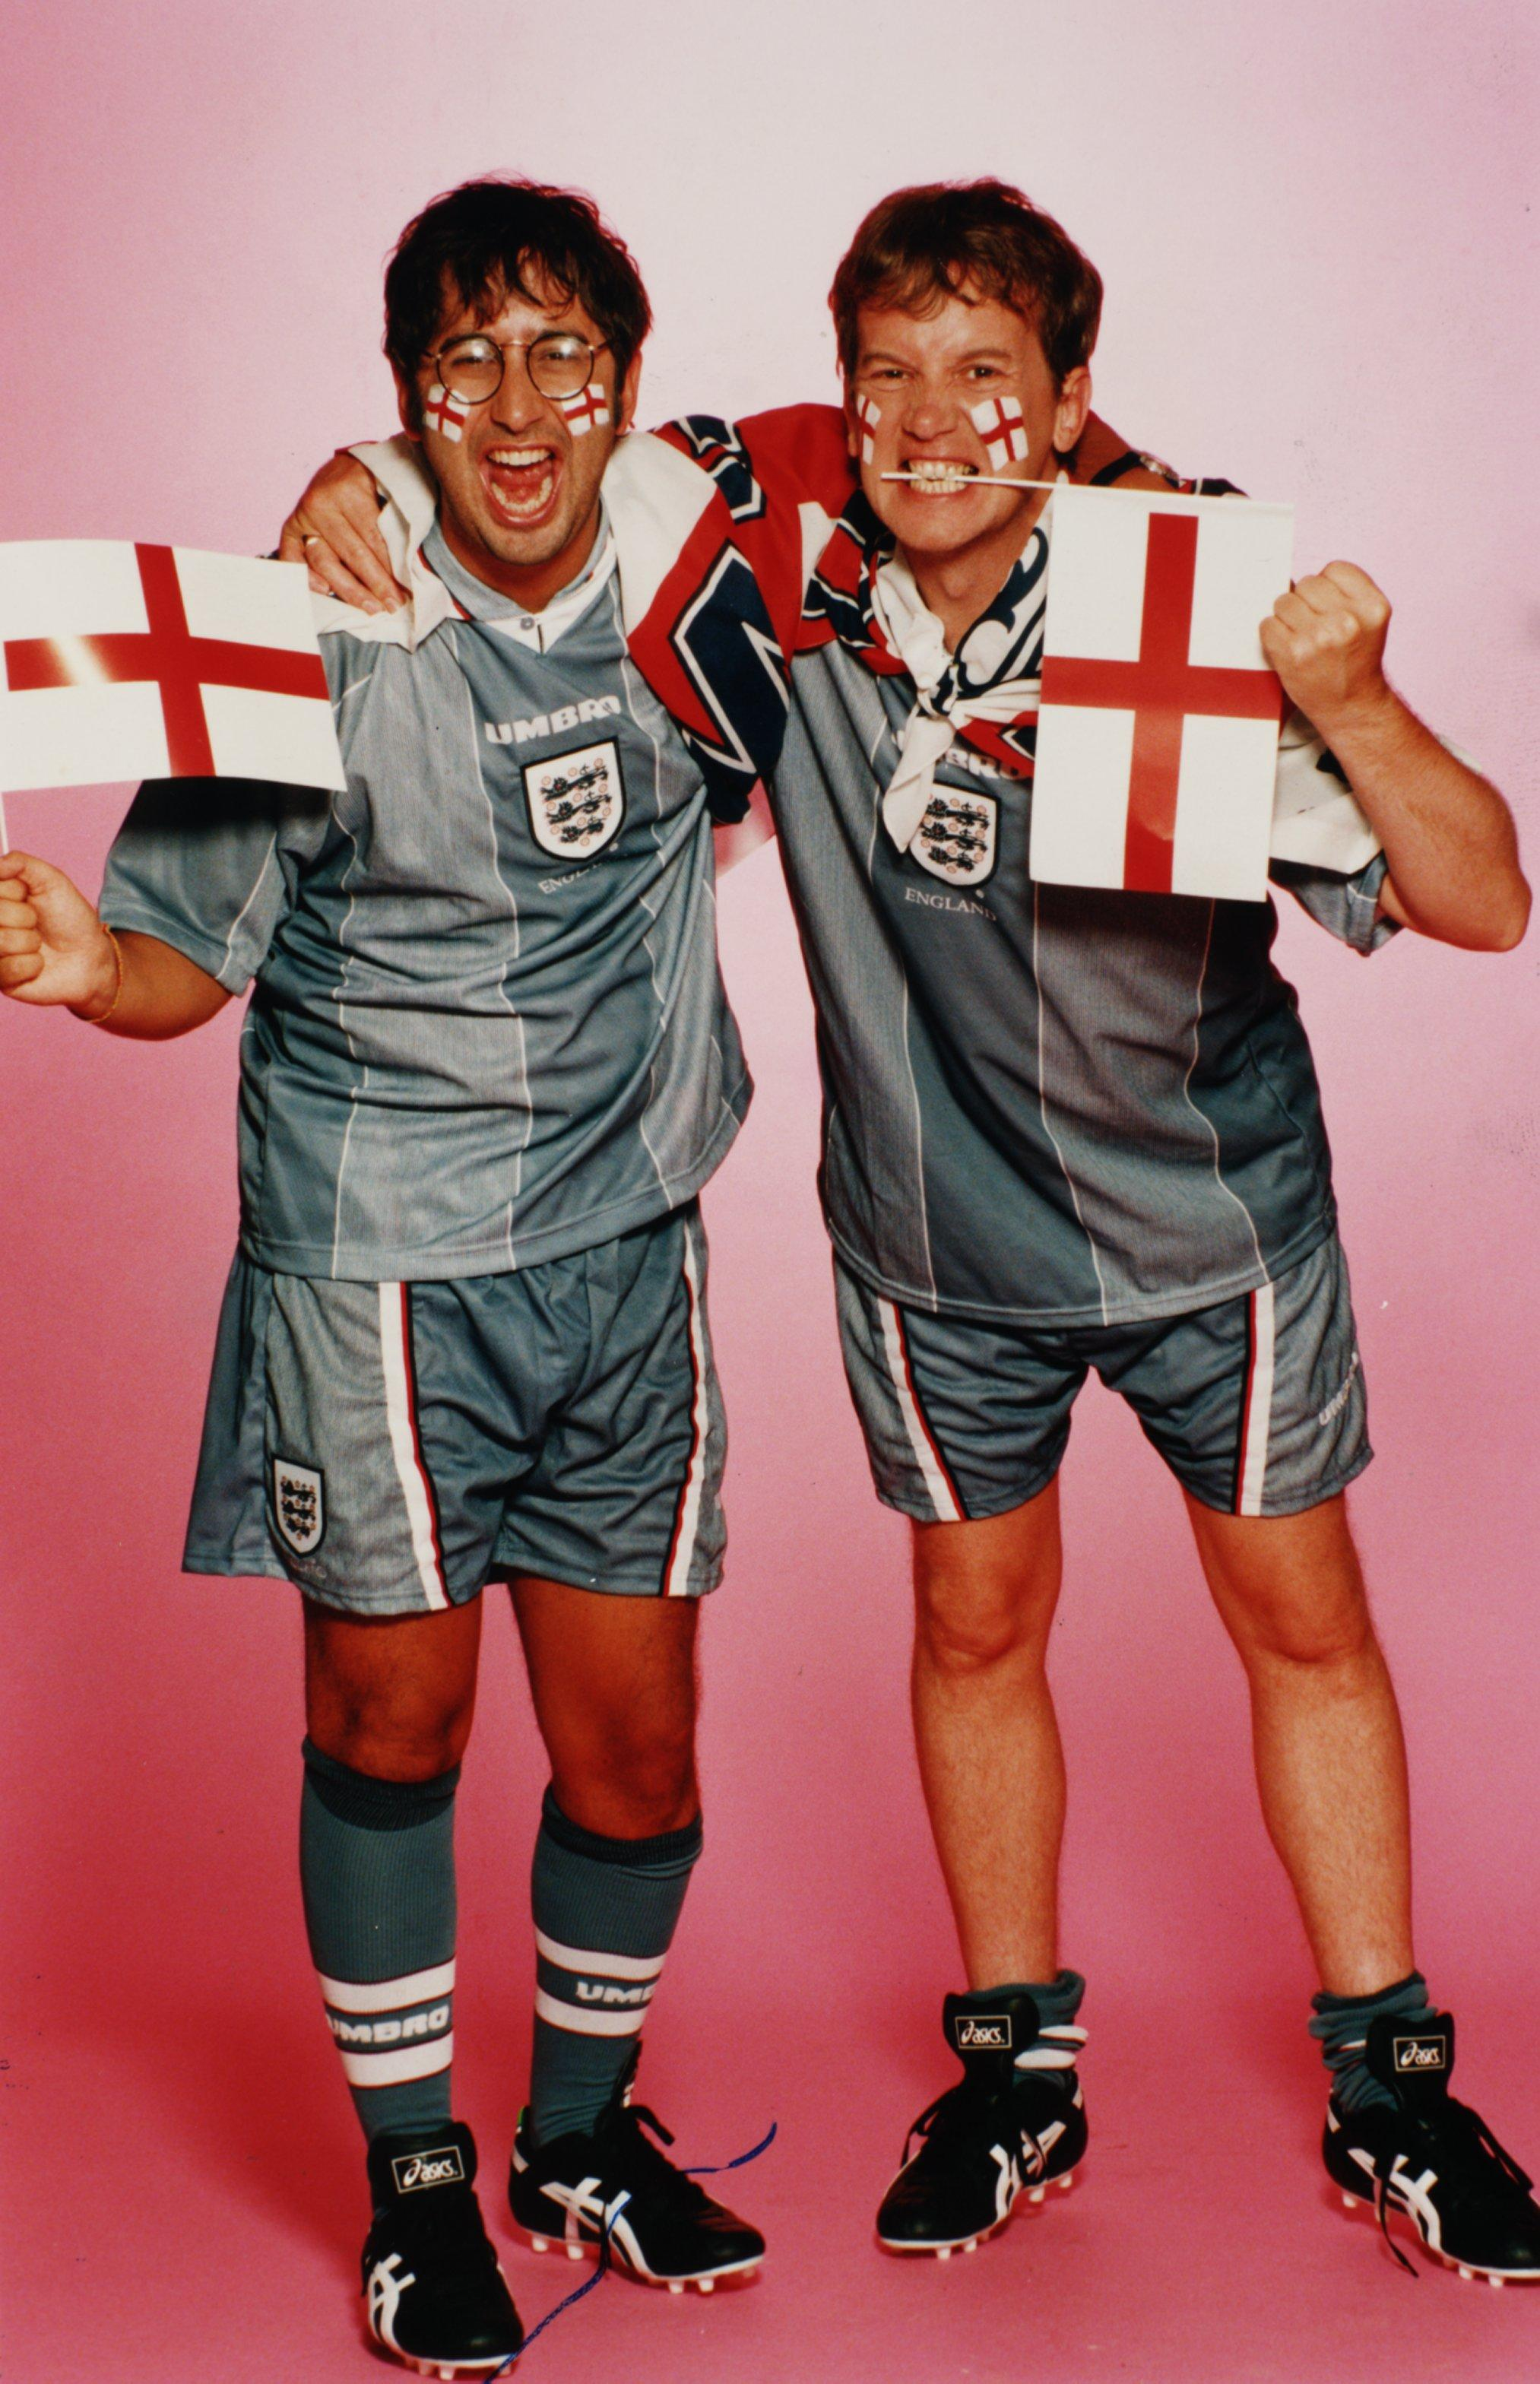 What are the Three Lions lyrics  why do England fans sing the     David Baddiel and Frank Skinner helped write the